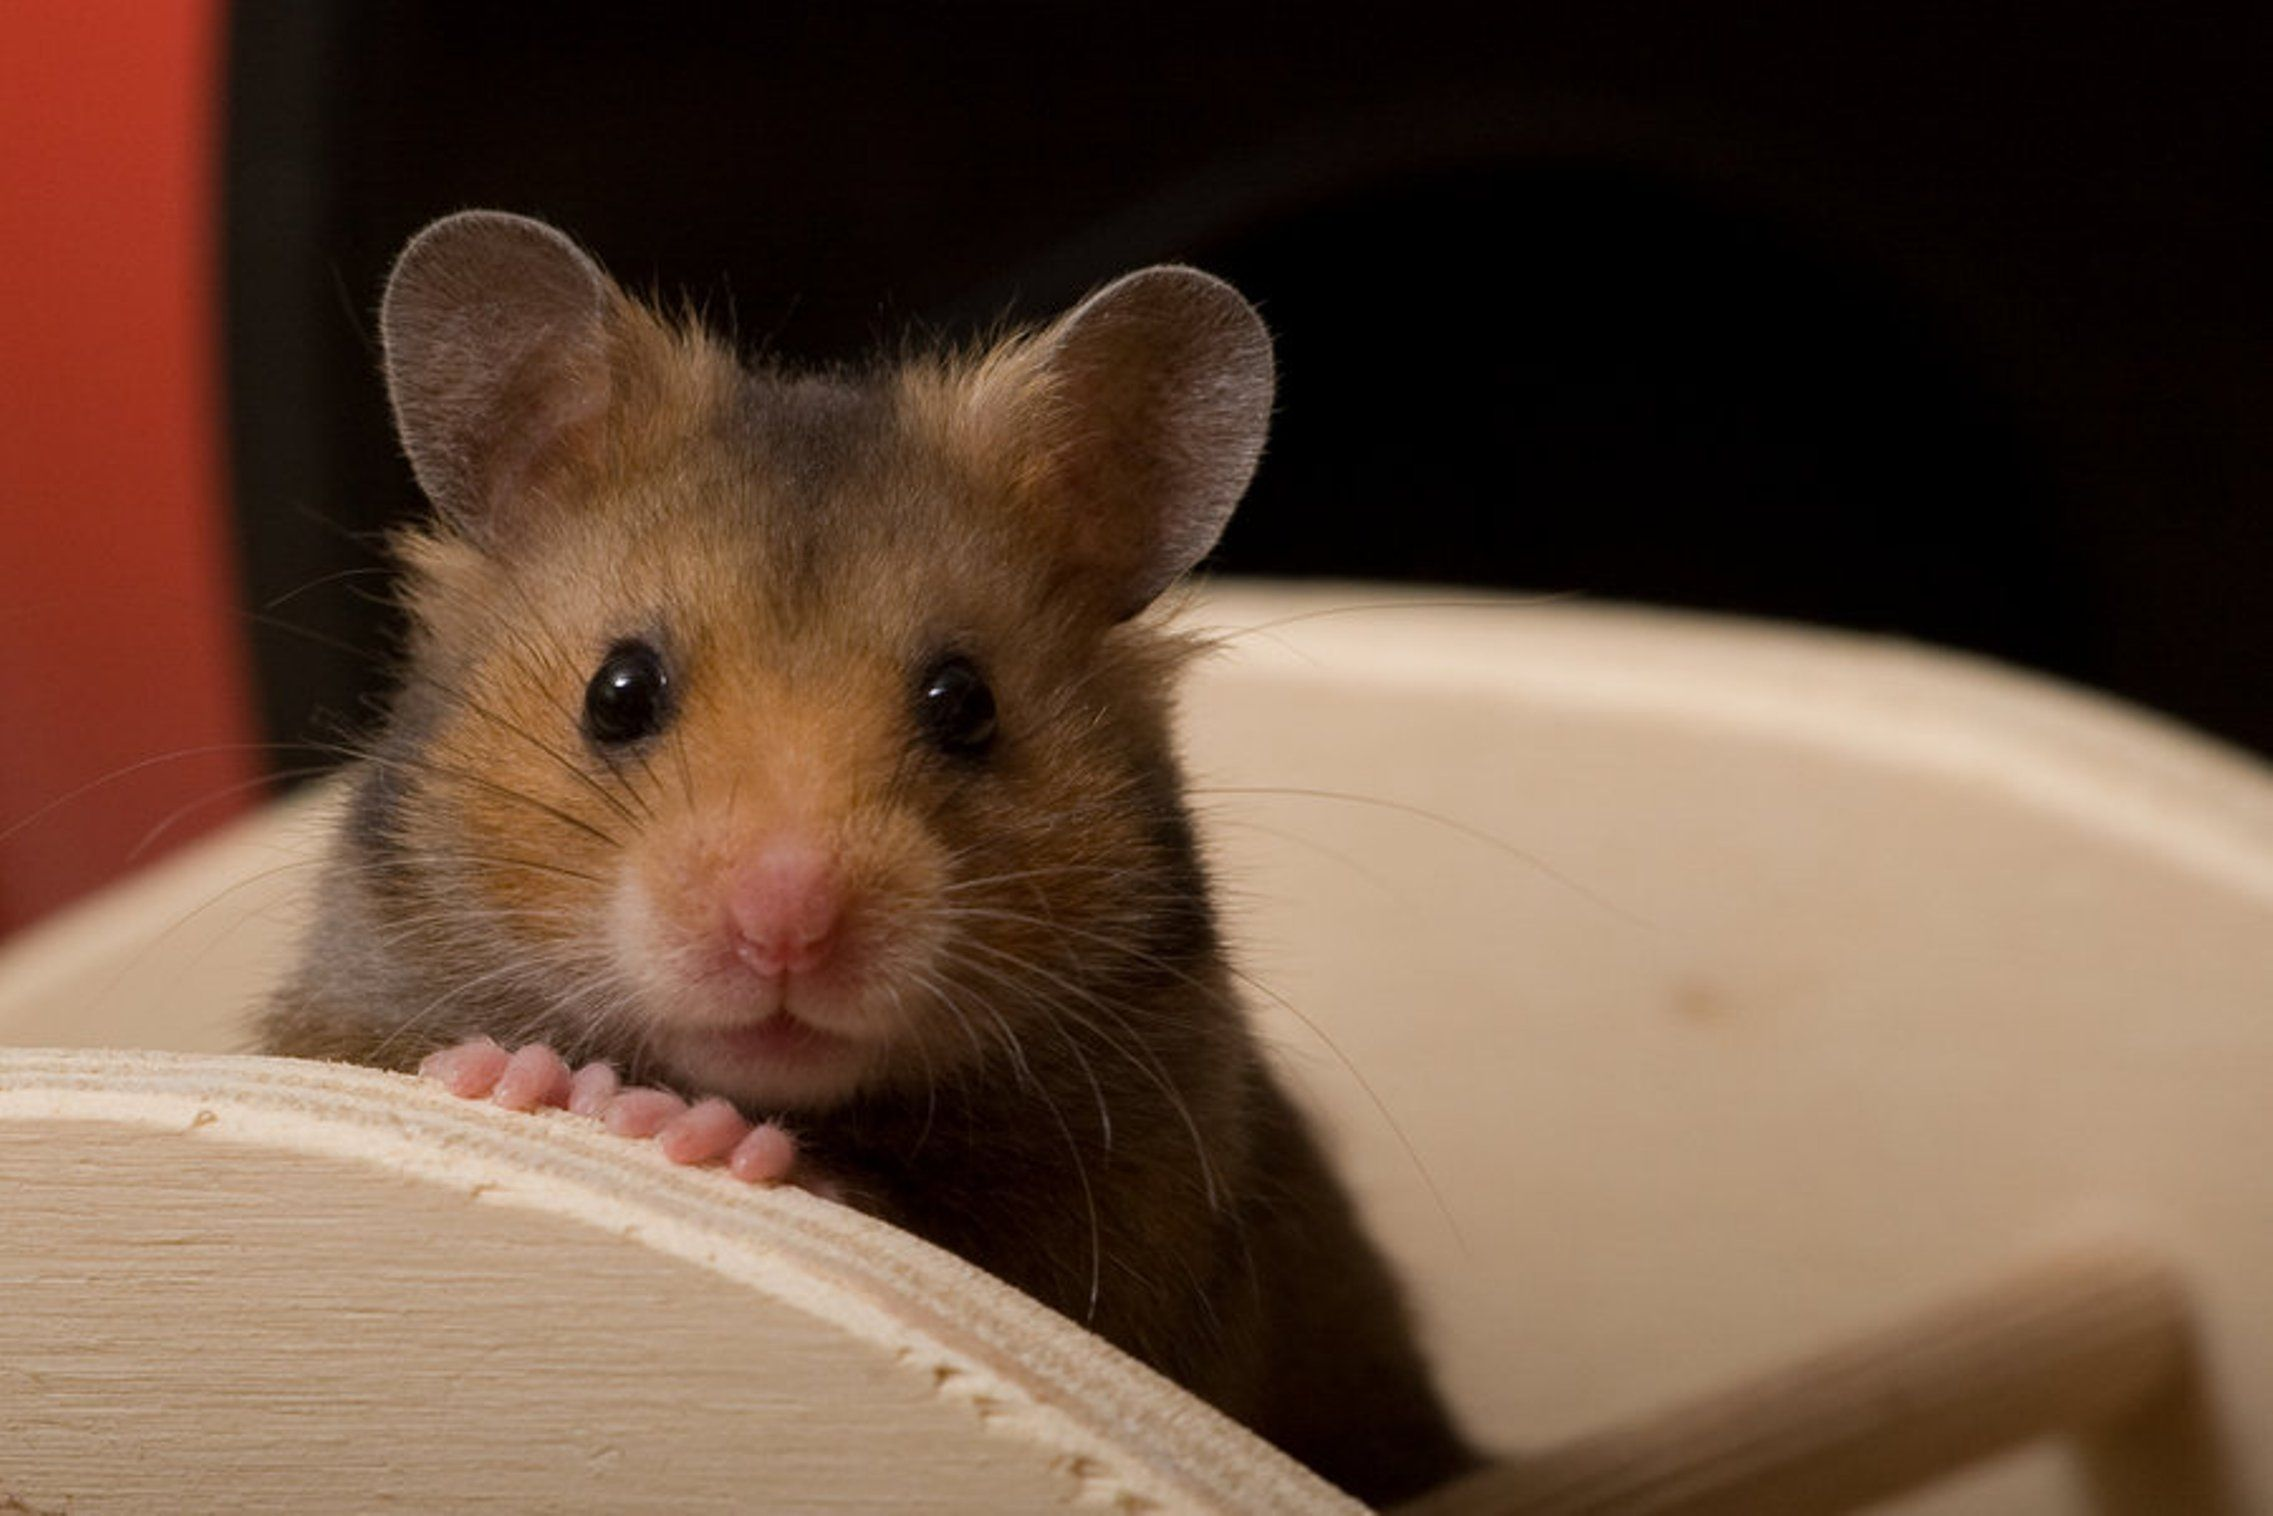 What are you looking at, human? | Hamsters | Pinterest ...